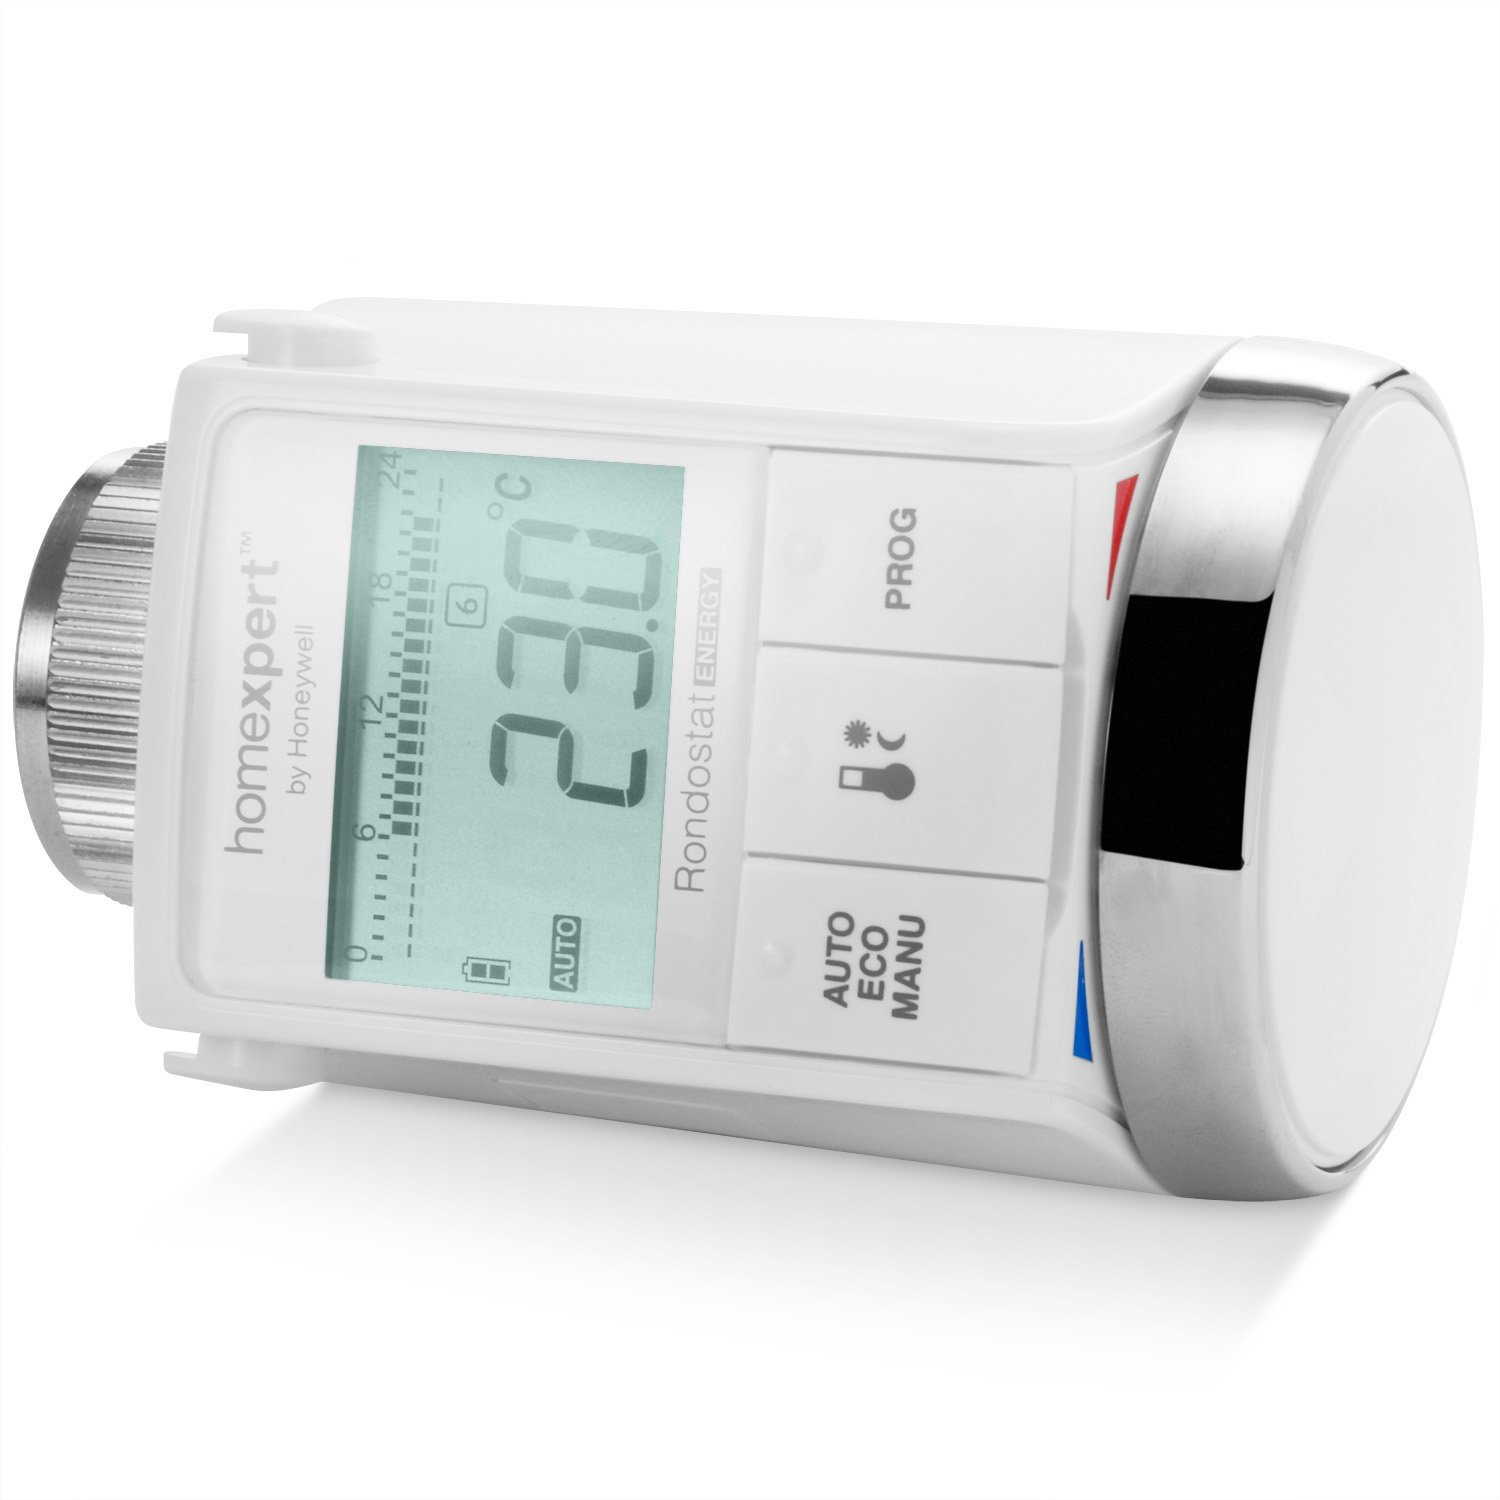 Honeywell Programmierbarer Heizkörperthermostat HR25 Energy 2